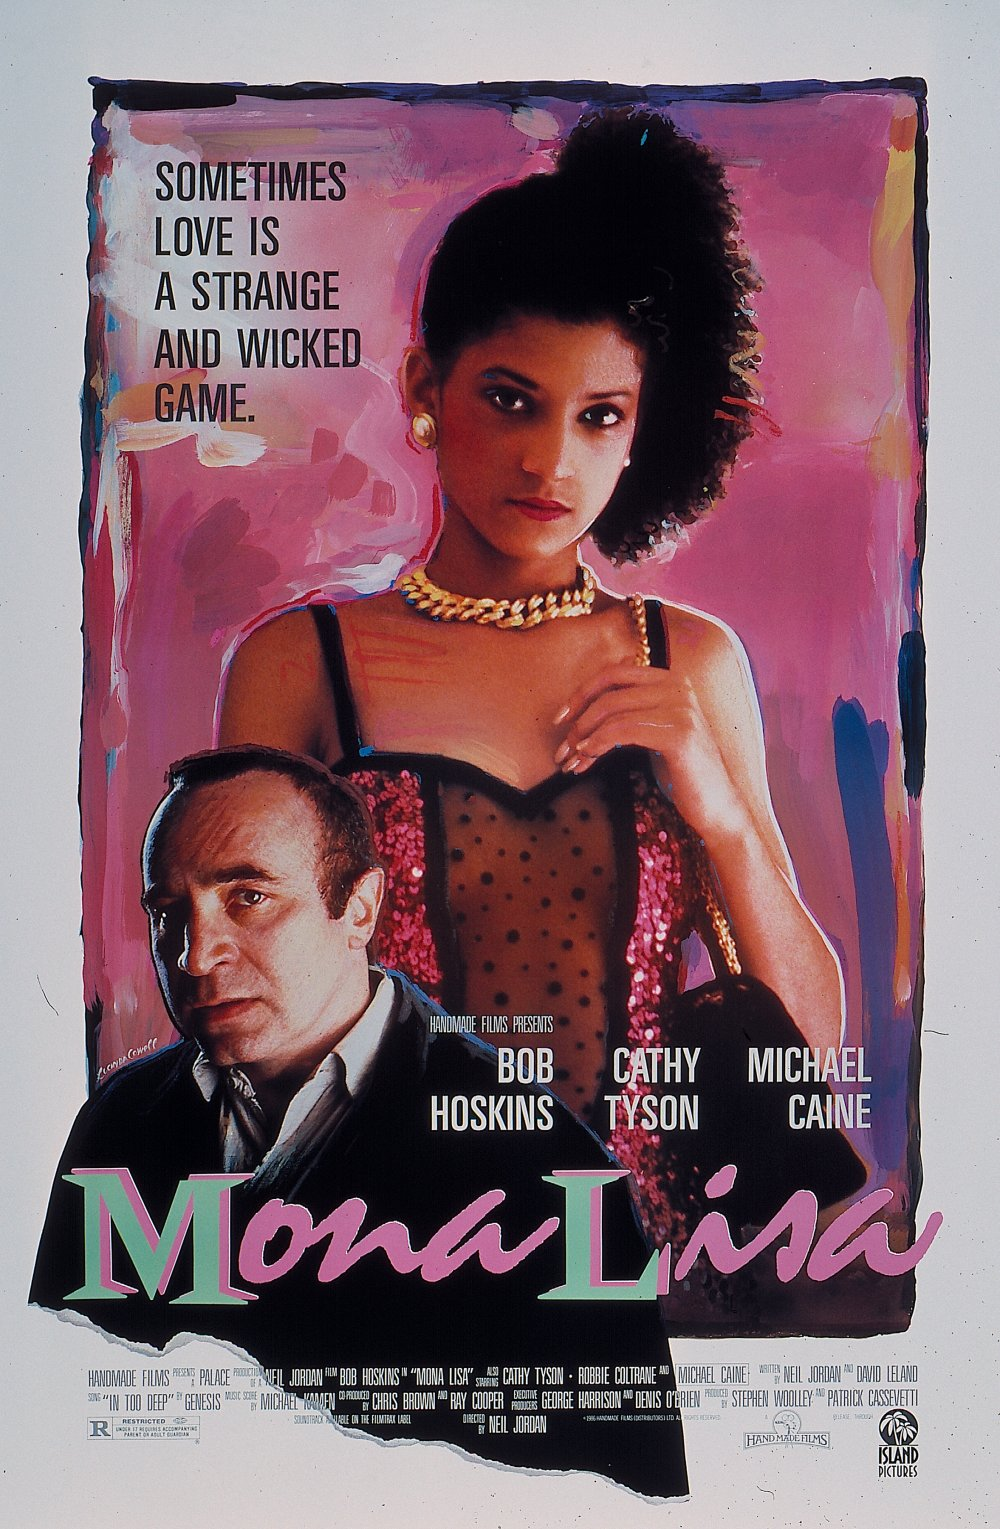 The original 1986 poster for Mona Lisa